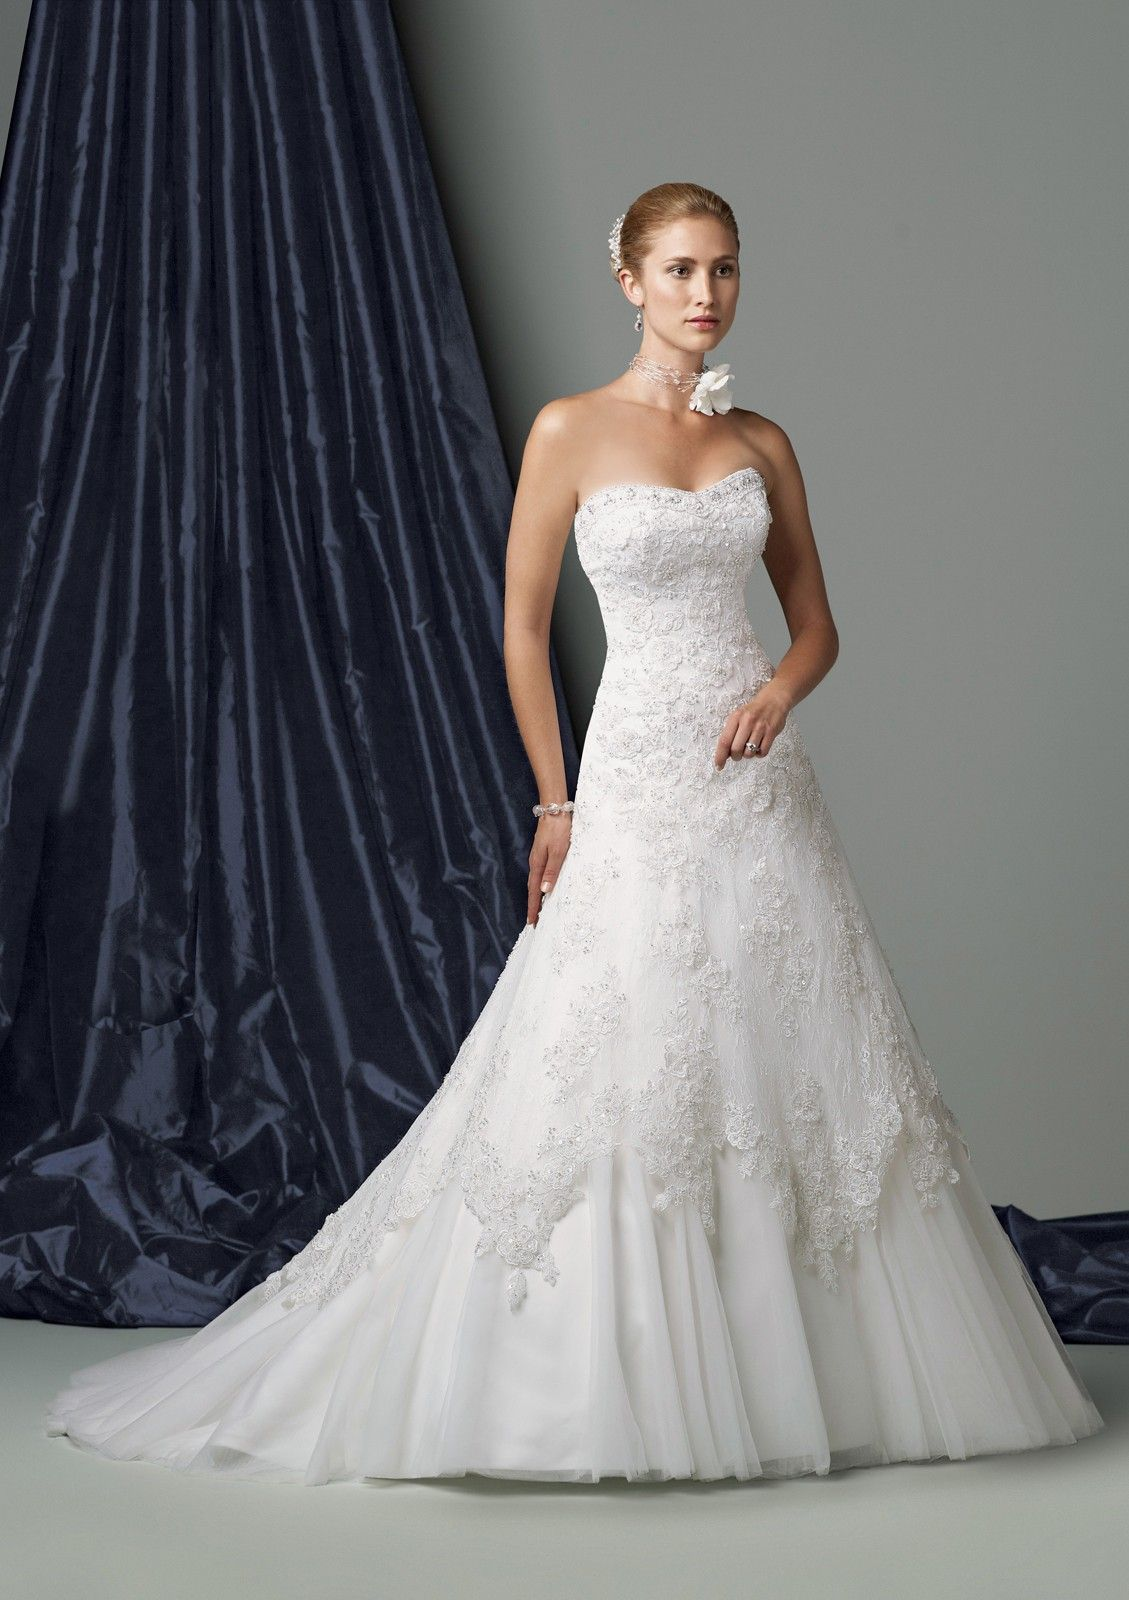 Strapless Wedding Dresses Are The Bride's #1 Dress Choice ...